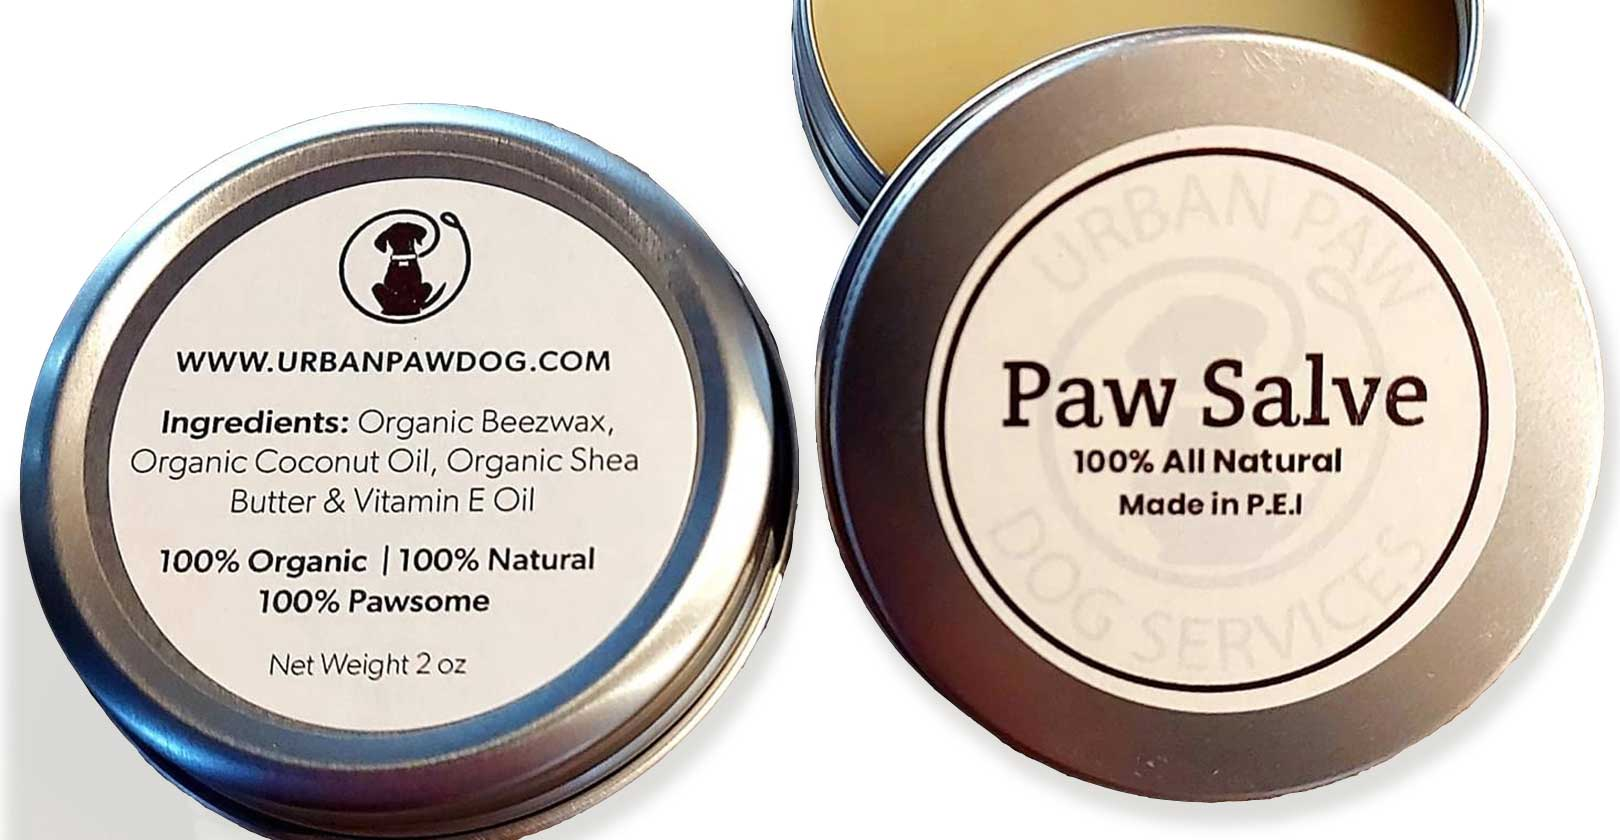 Product Labels – Urban Paw